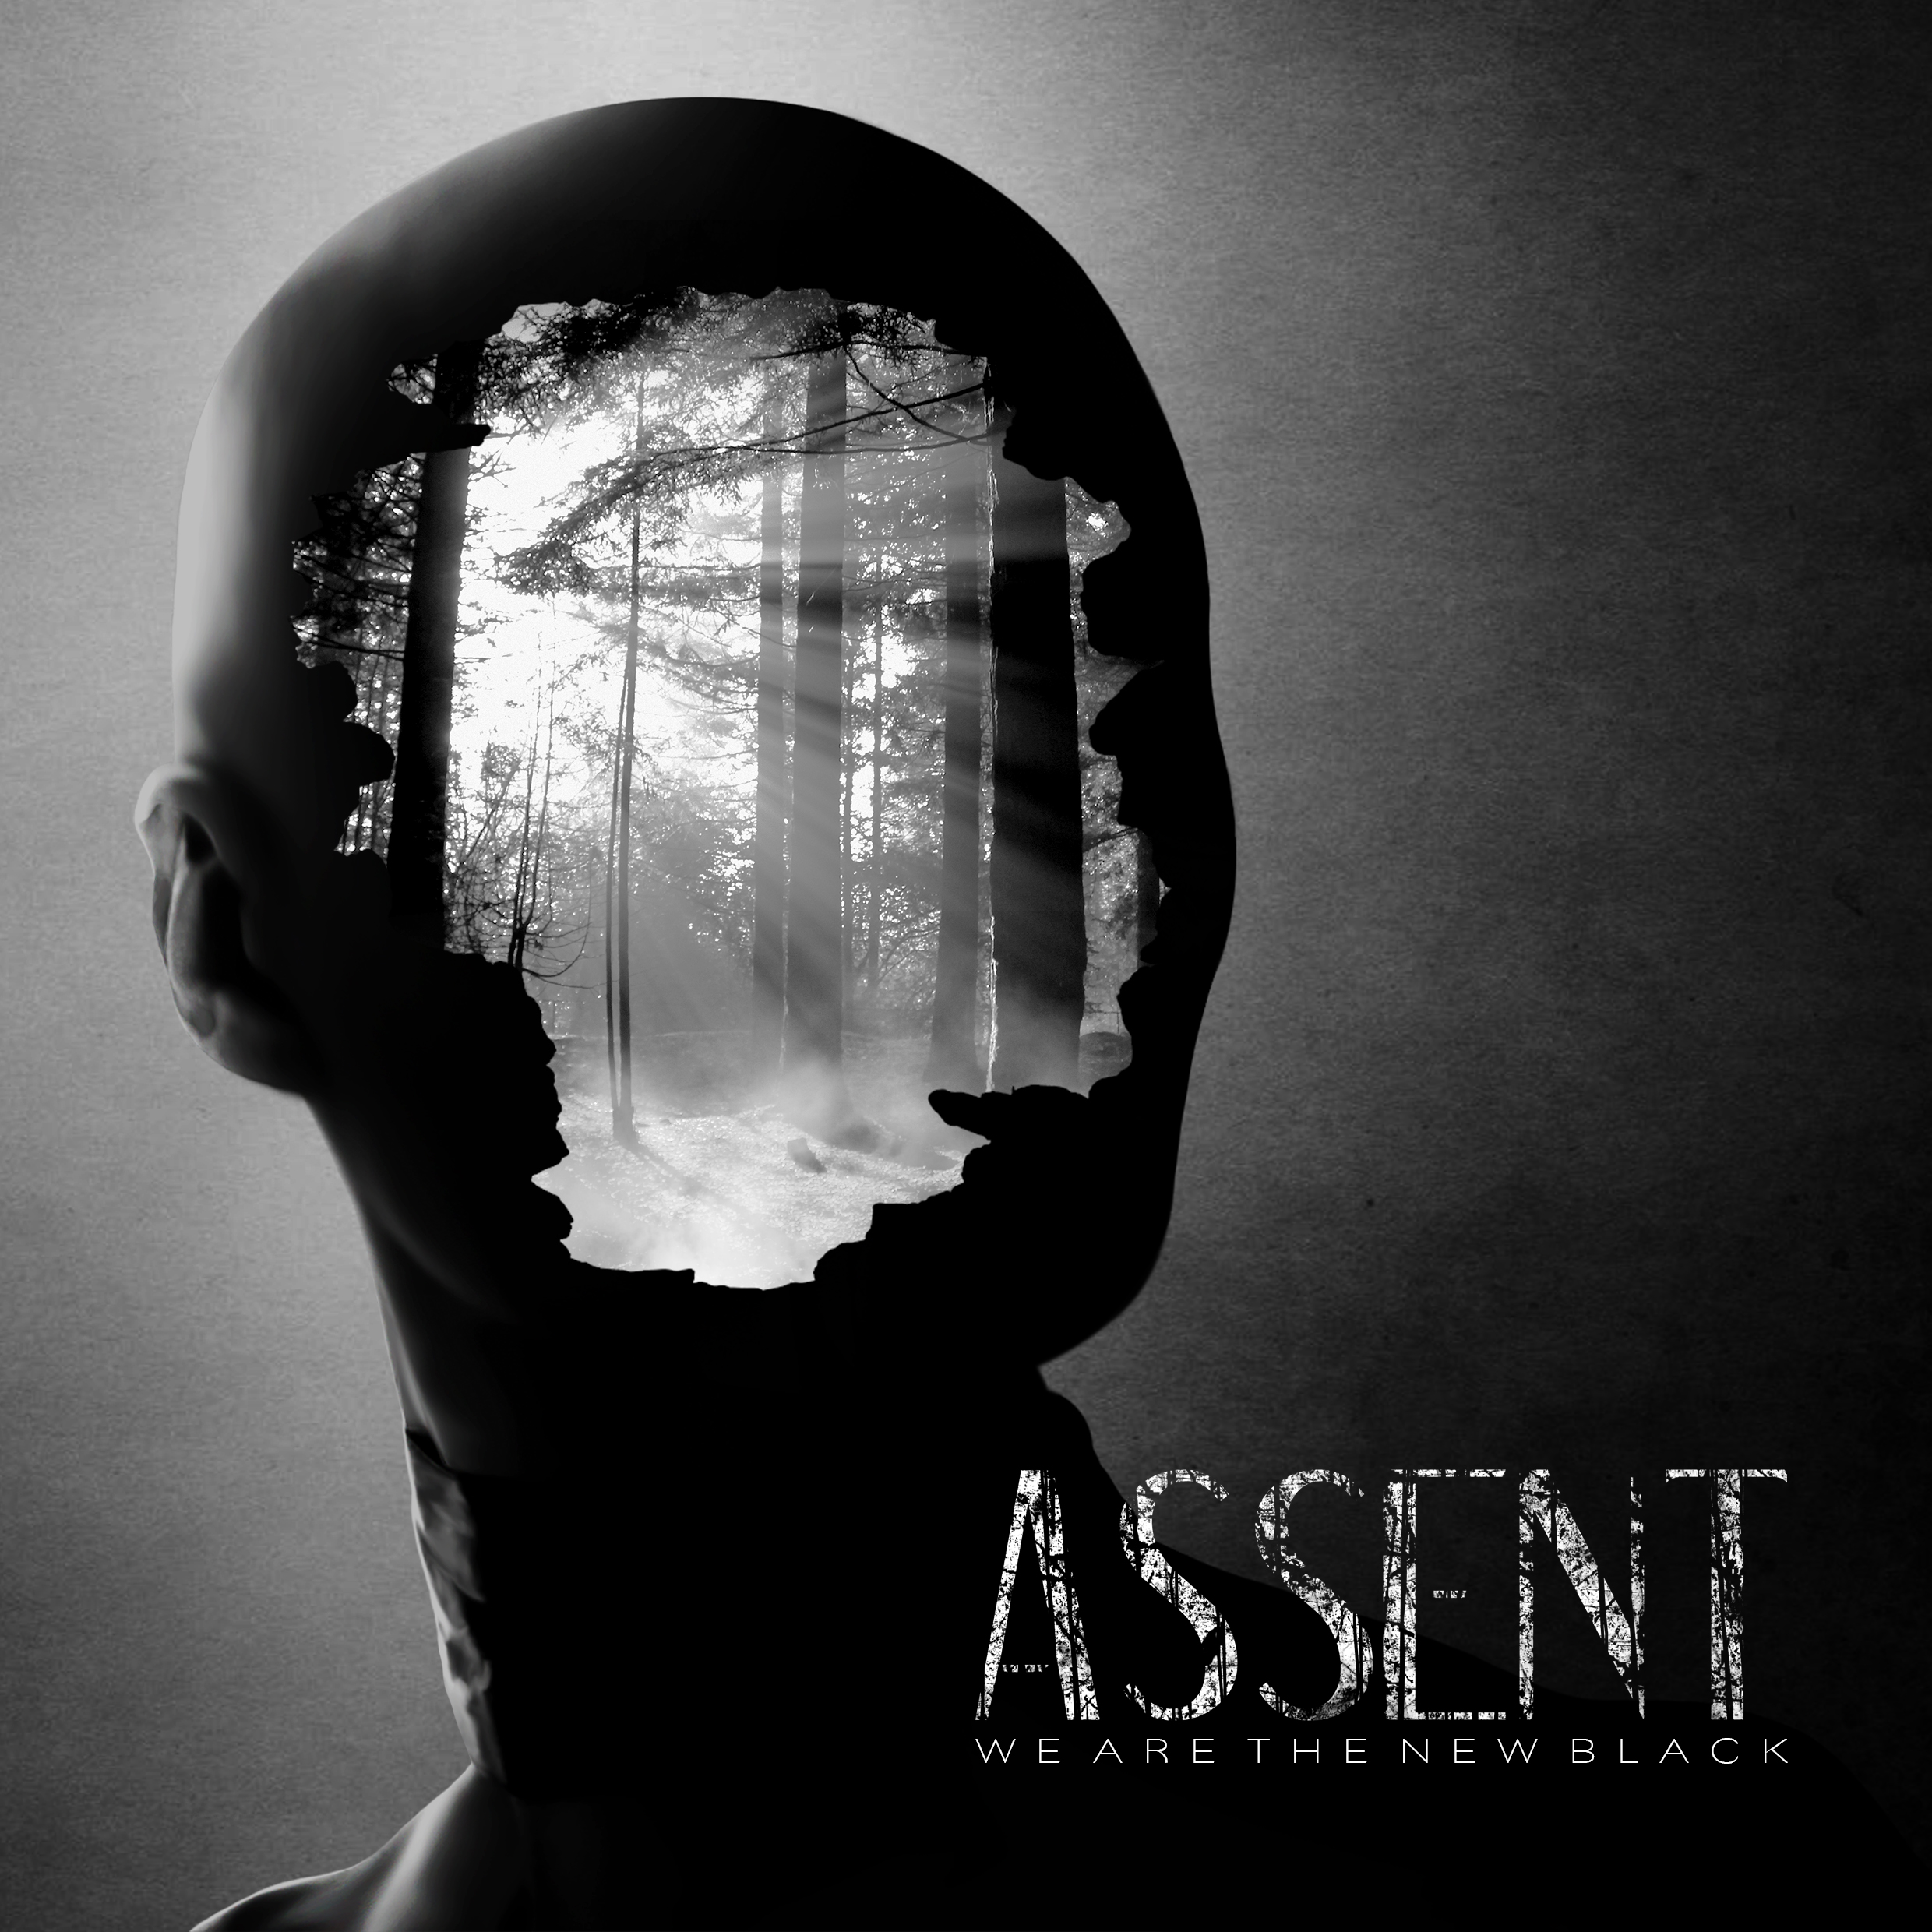 Assent - the band